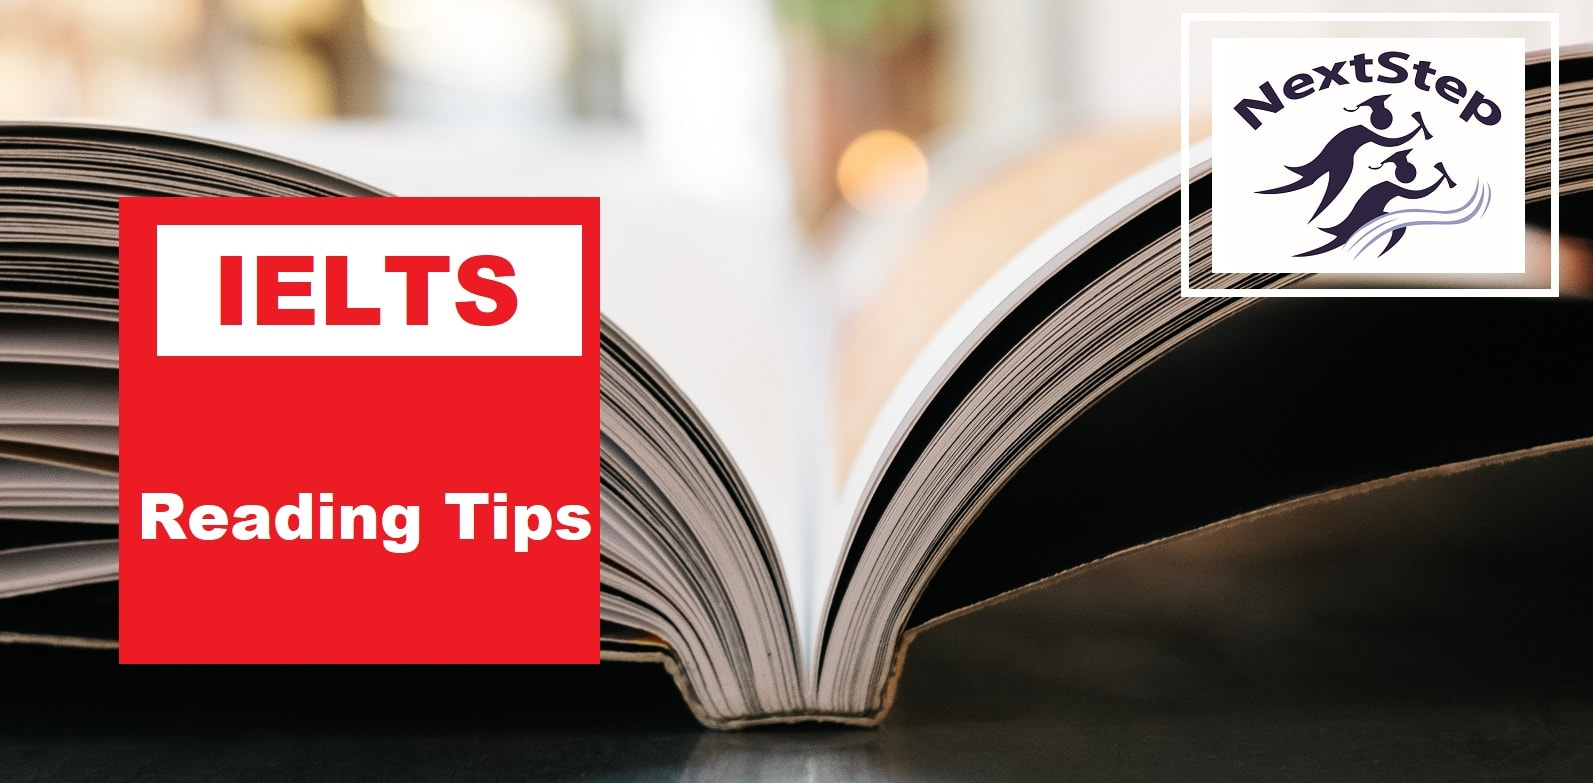 IELTS reading tips| How to read fast